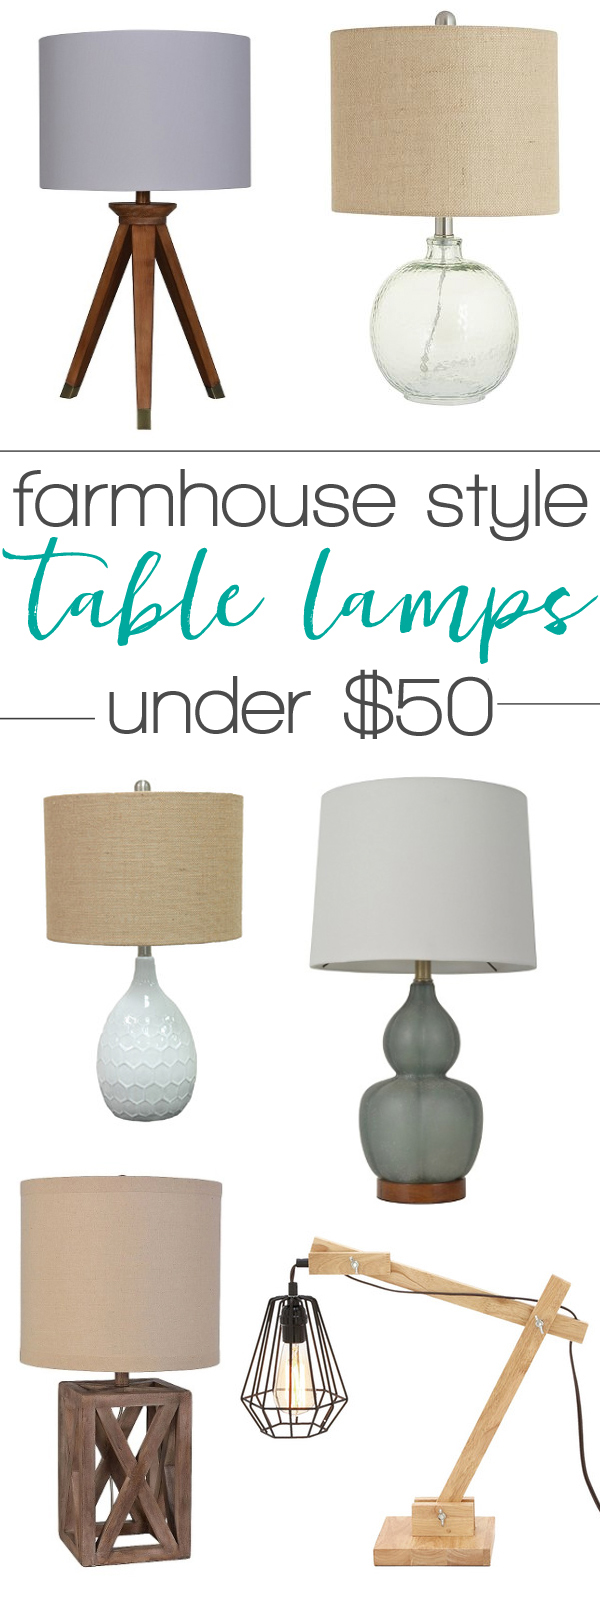 Merveilleux Beautiful Farmhouse Style Table Lamps   All Under $50